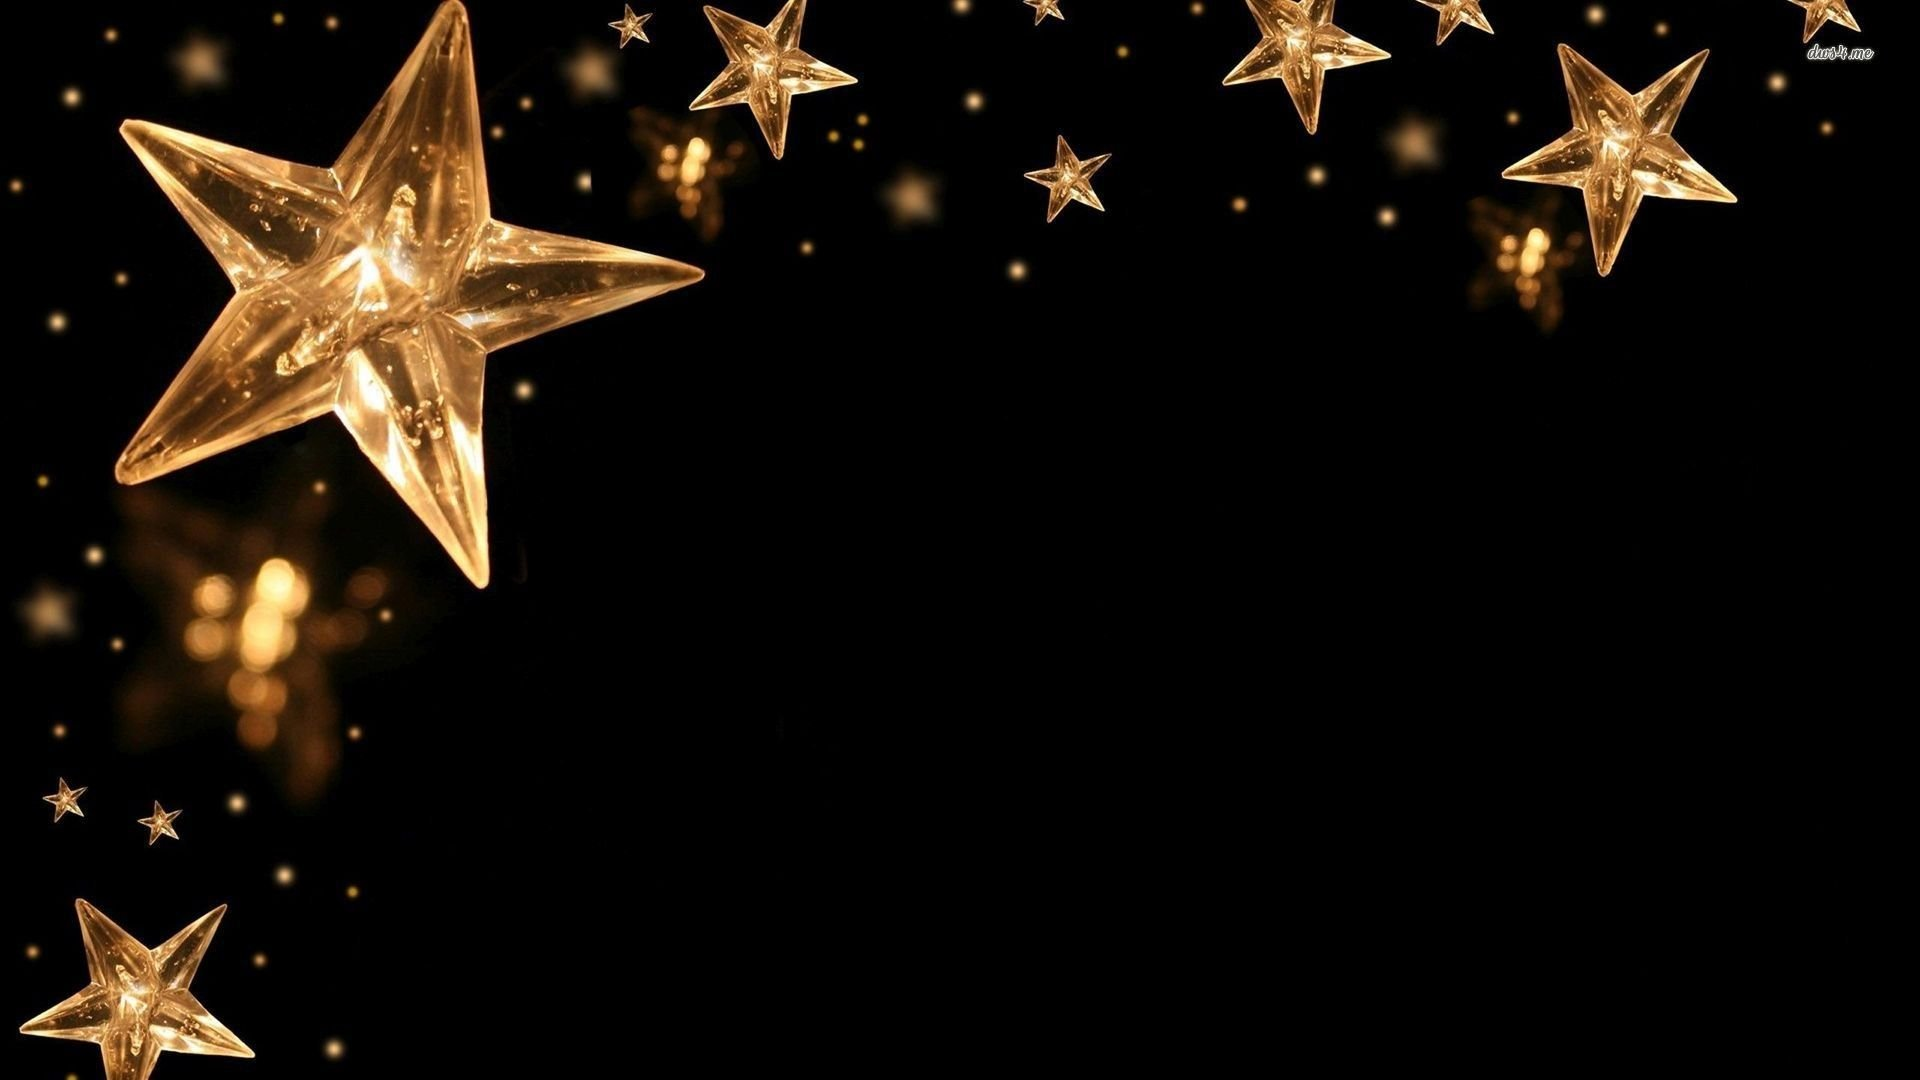 Gold Stars Wallpapers Top Free Gold Stars Backgrounds